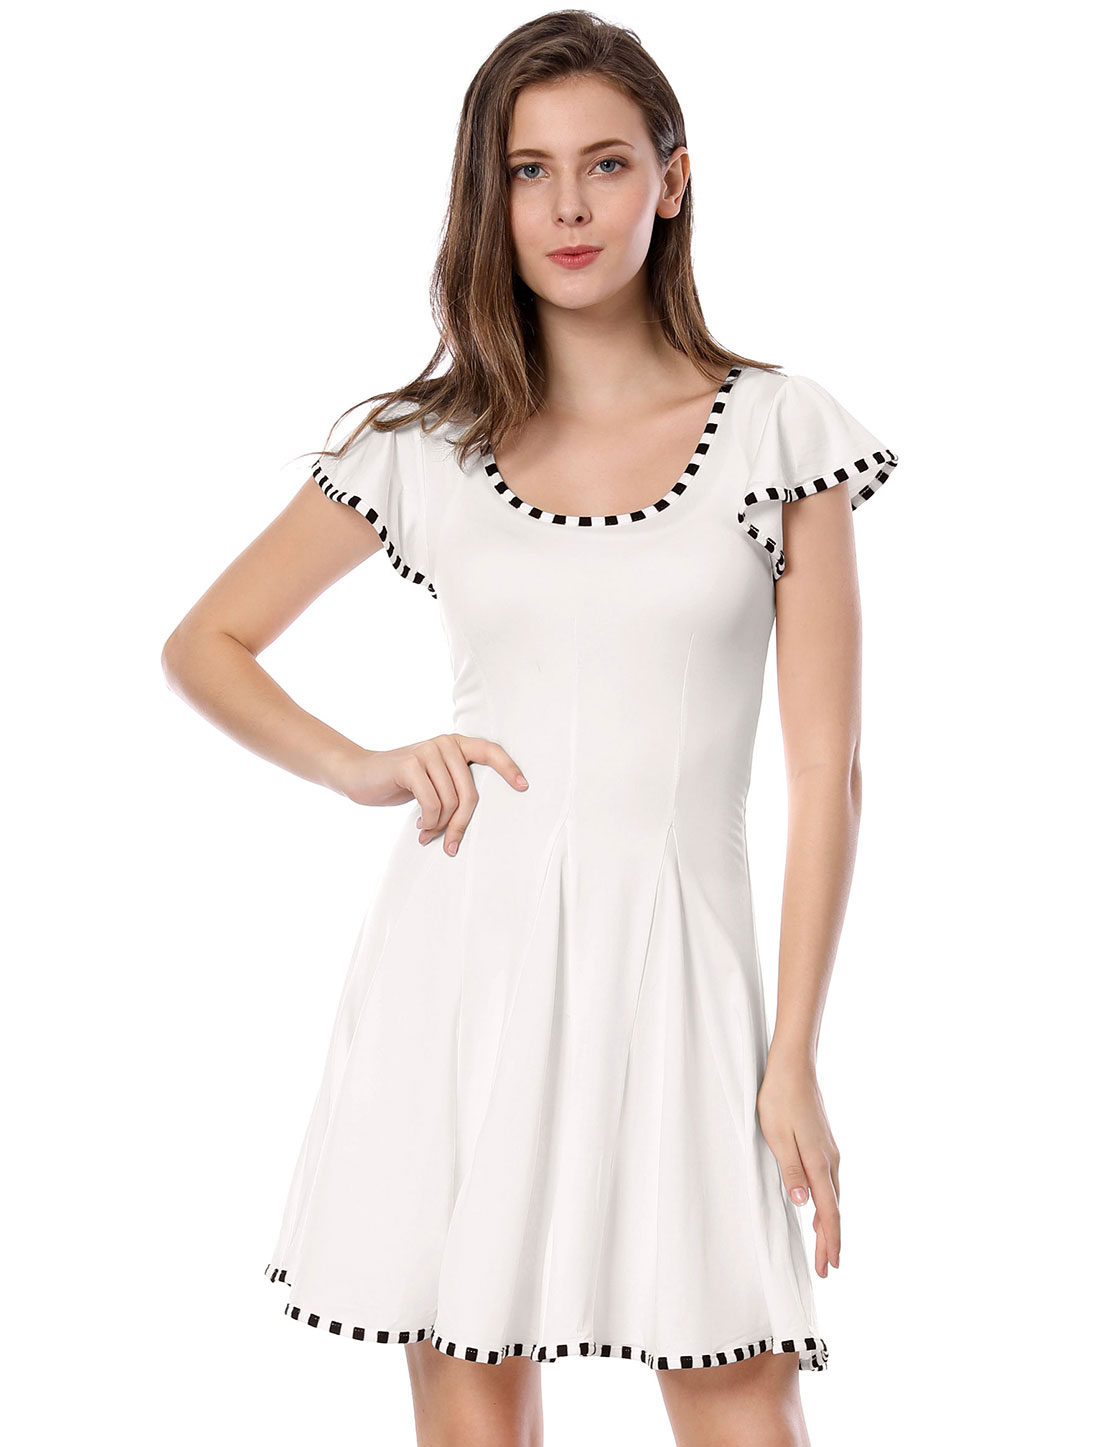 Women Scoop Neck Cap Sleeve White Stretchy Mini Dress S